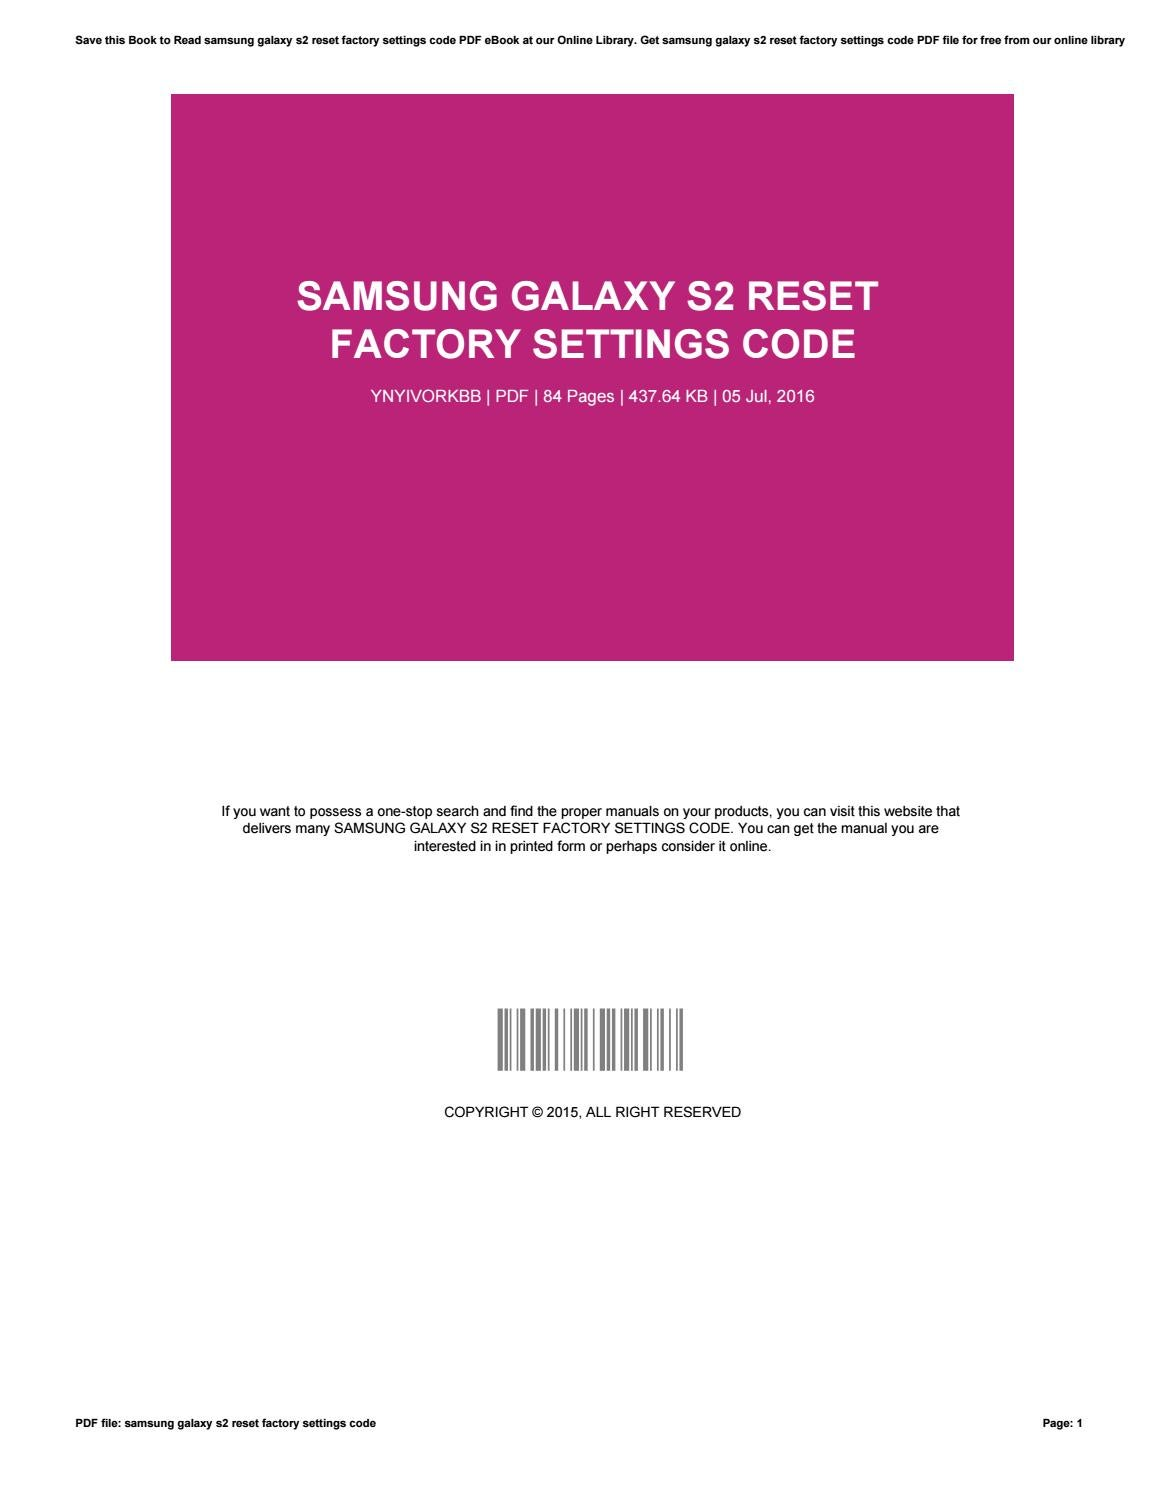 Samsung galaxy s2 reset factory settings code by